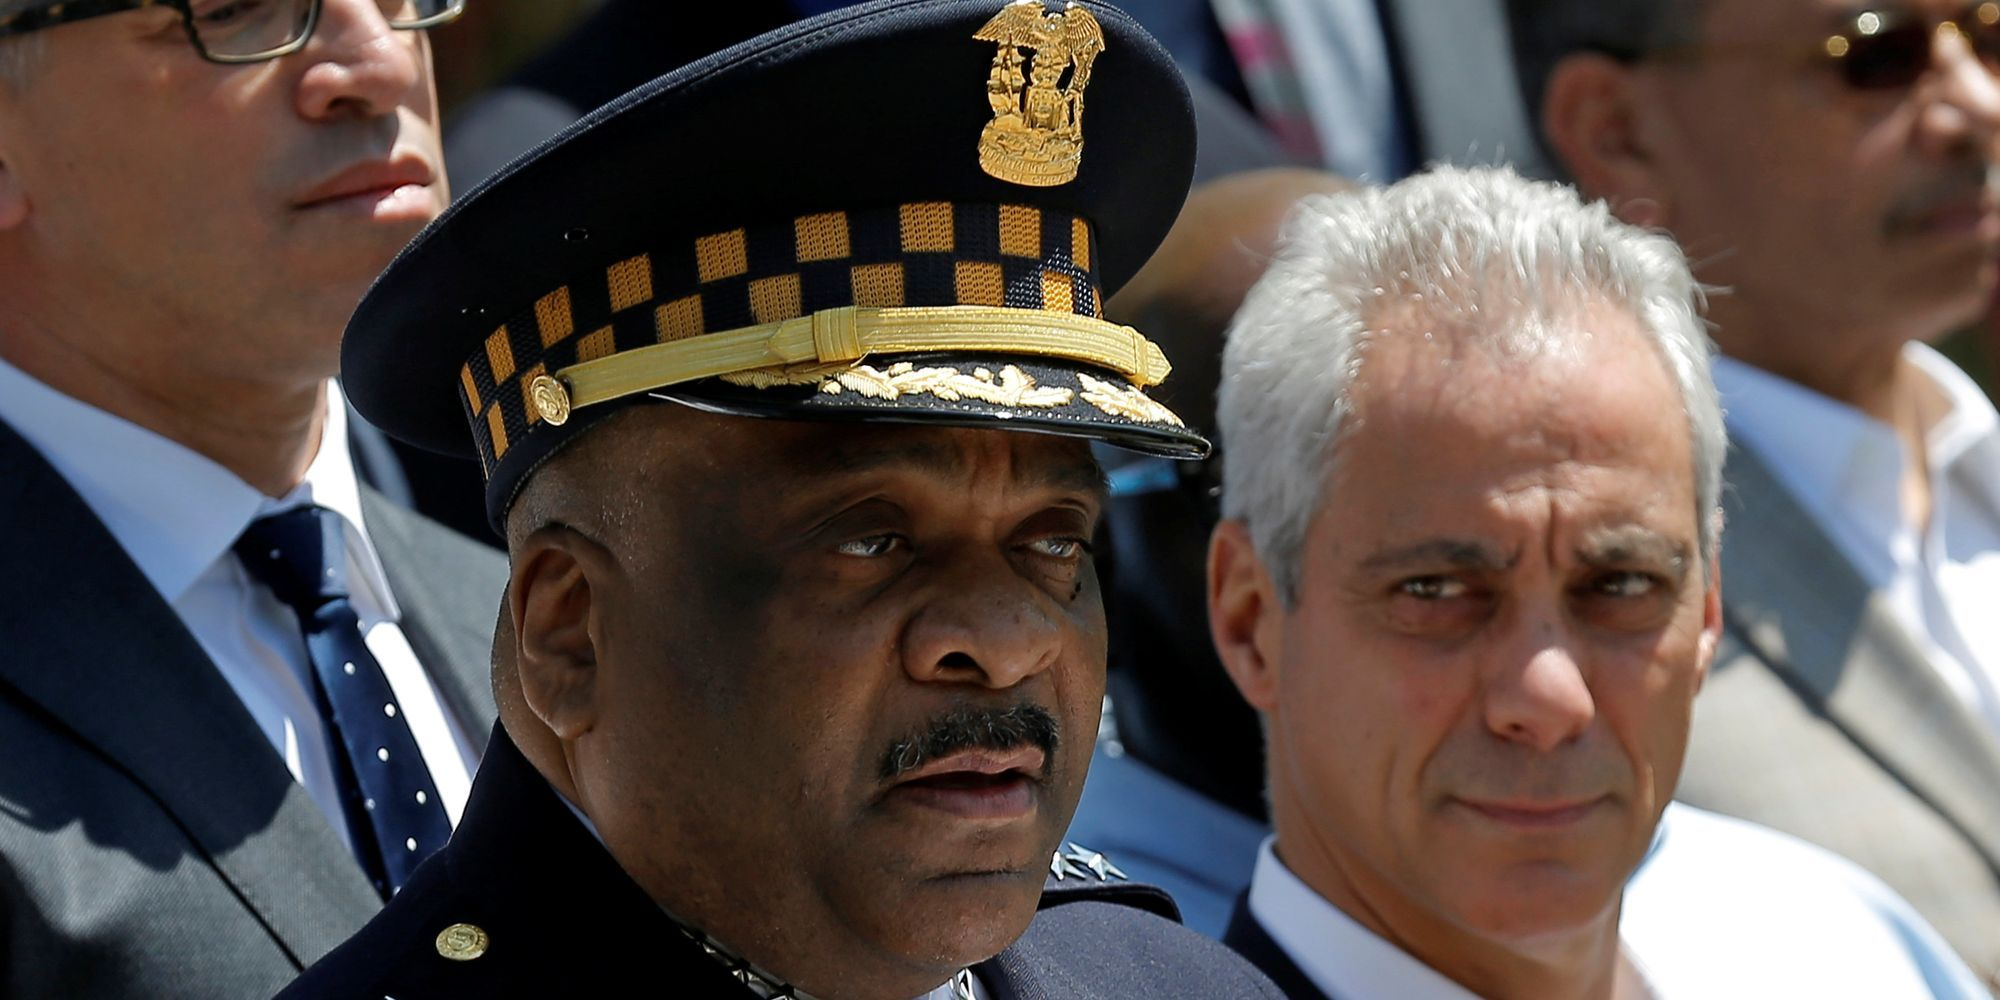 Chicago Police To Donald Trump: We Asked For Help And You Never Responded